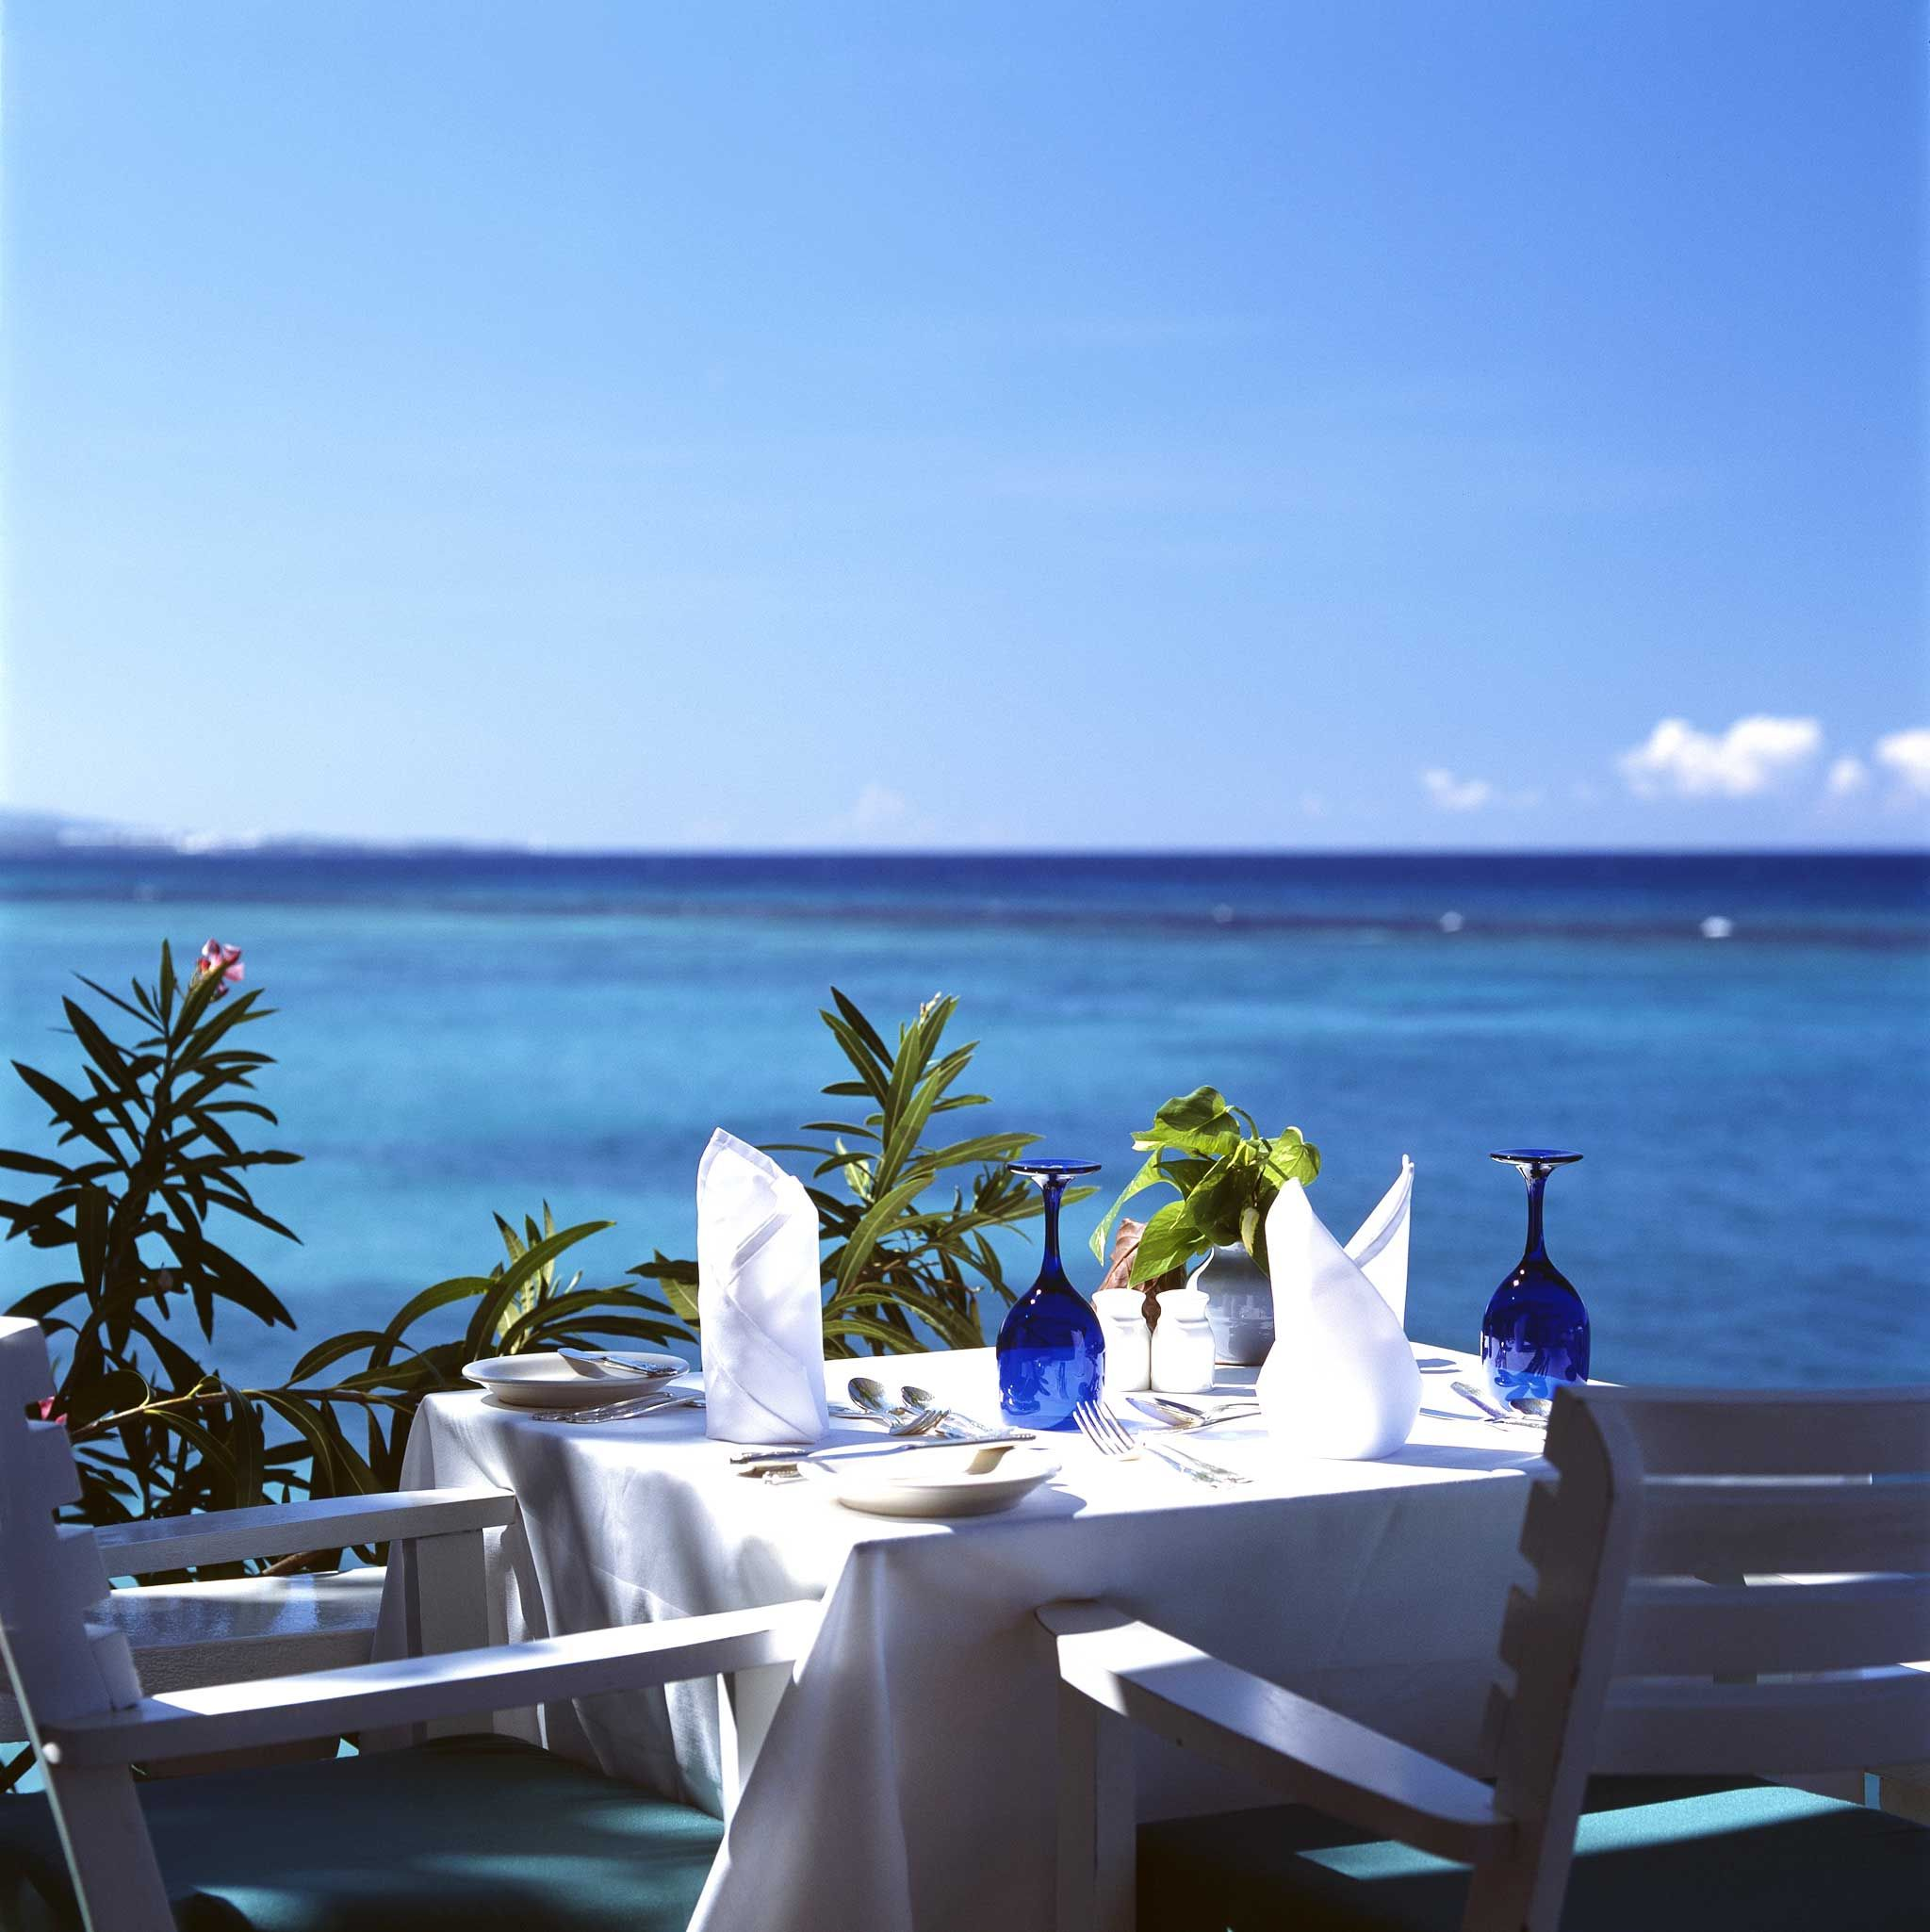 Days at the Jamaica Inn revolve around beach time and meal times — chef Maurice serves classic Jamaican fare.